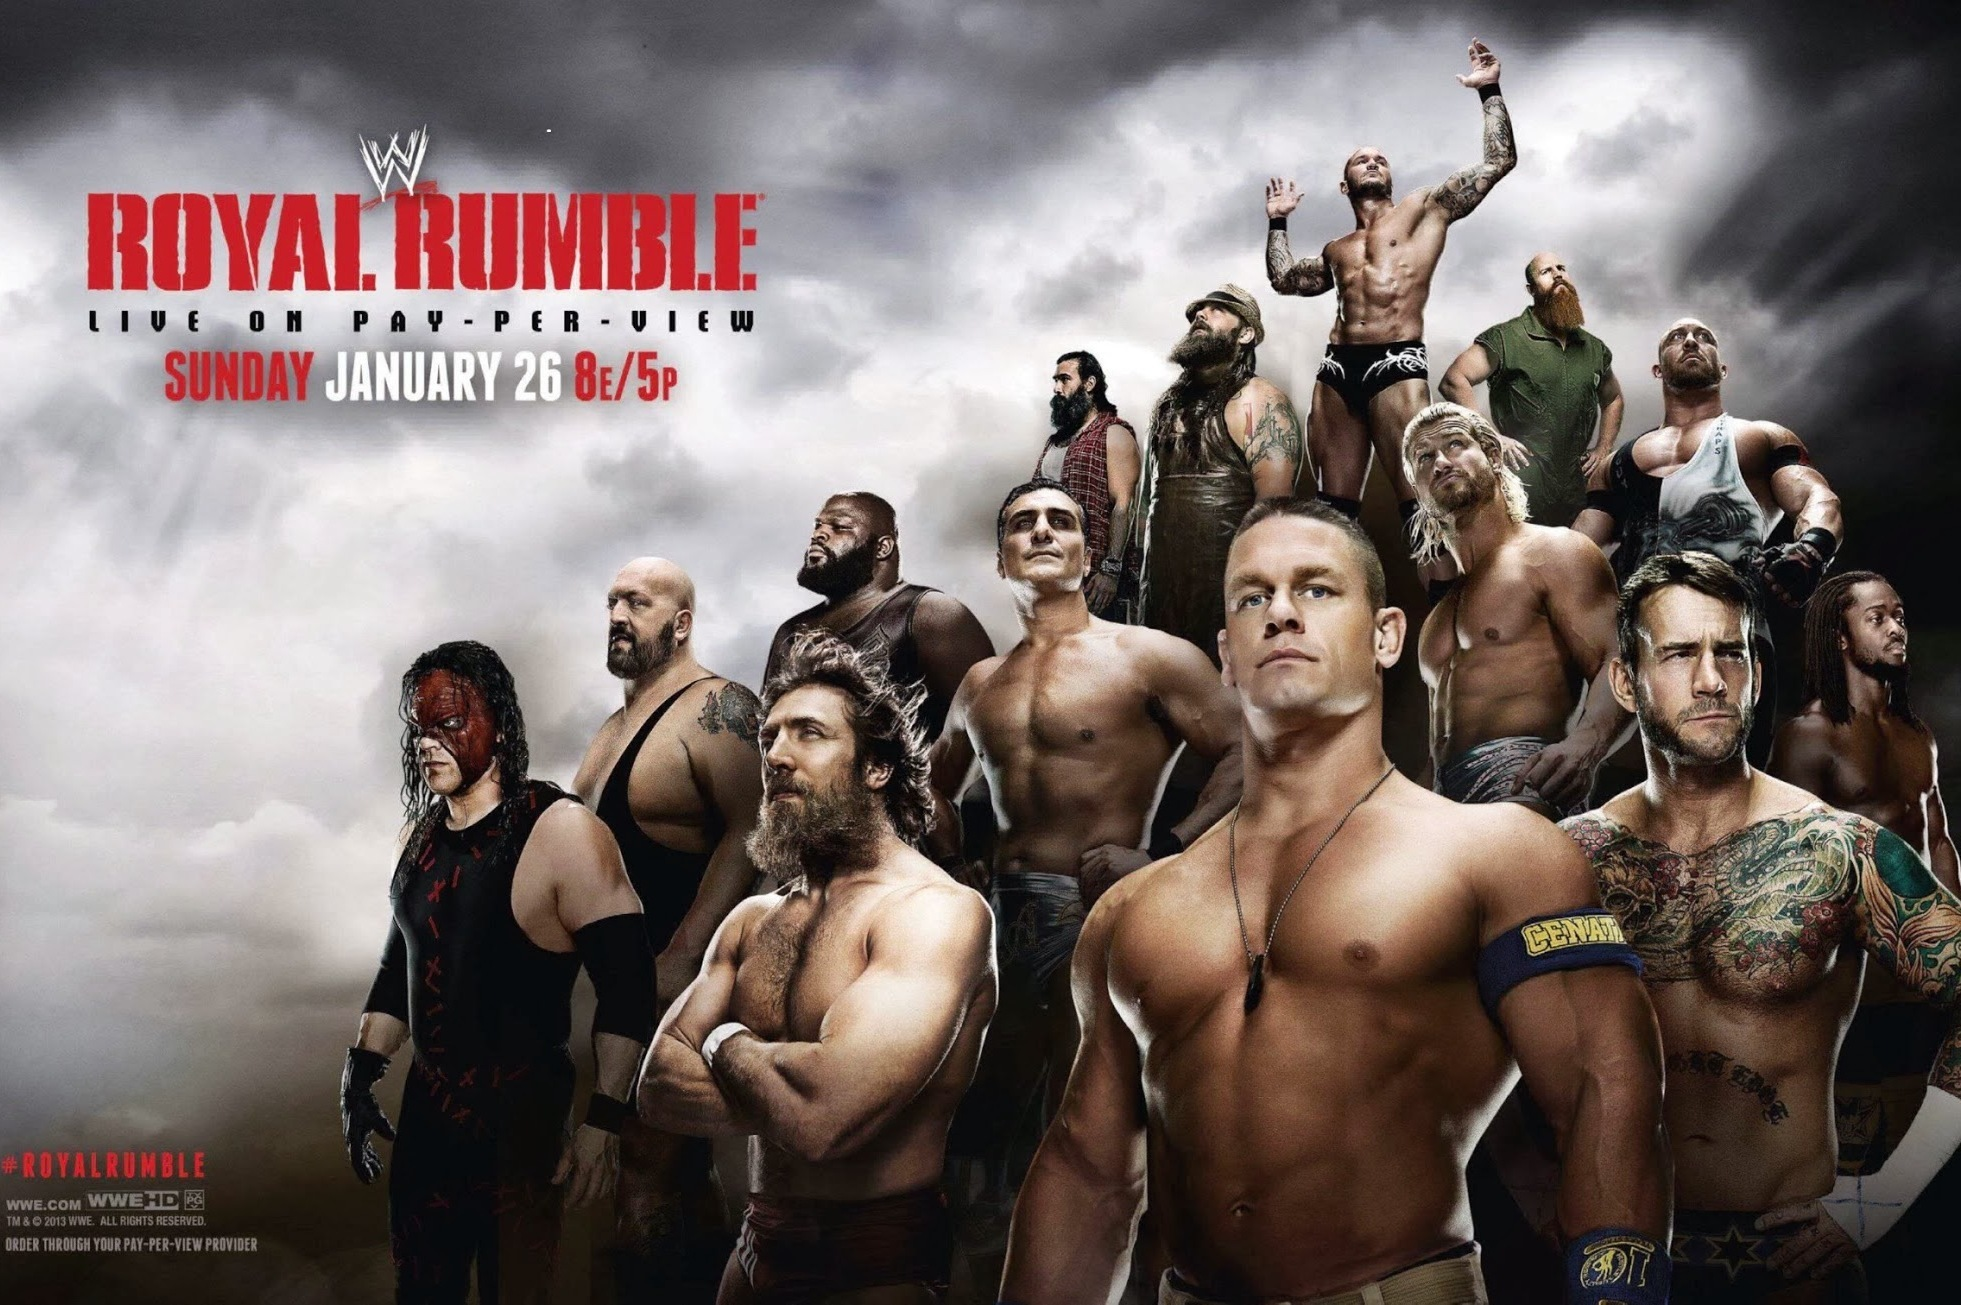 Bet on wwe royal rumble 2014 bwin betting shops bookmakers